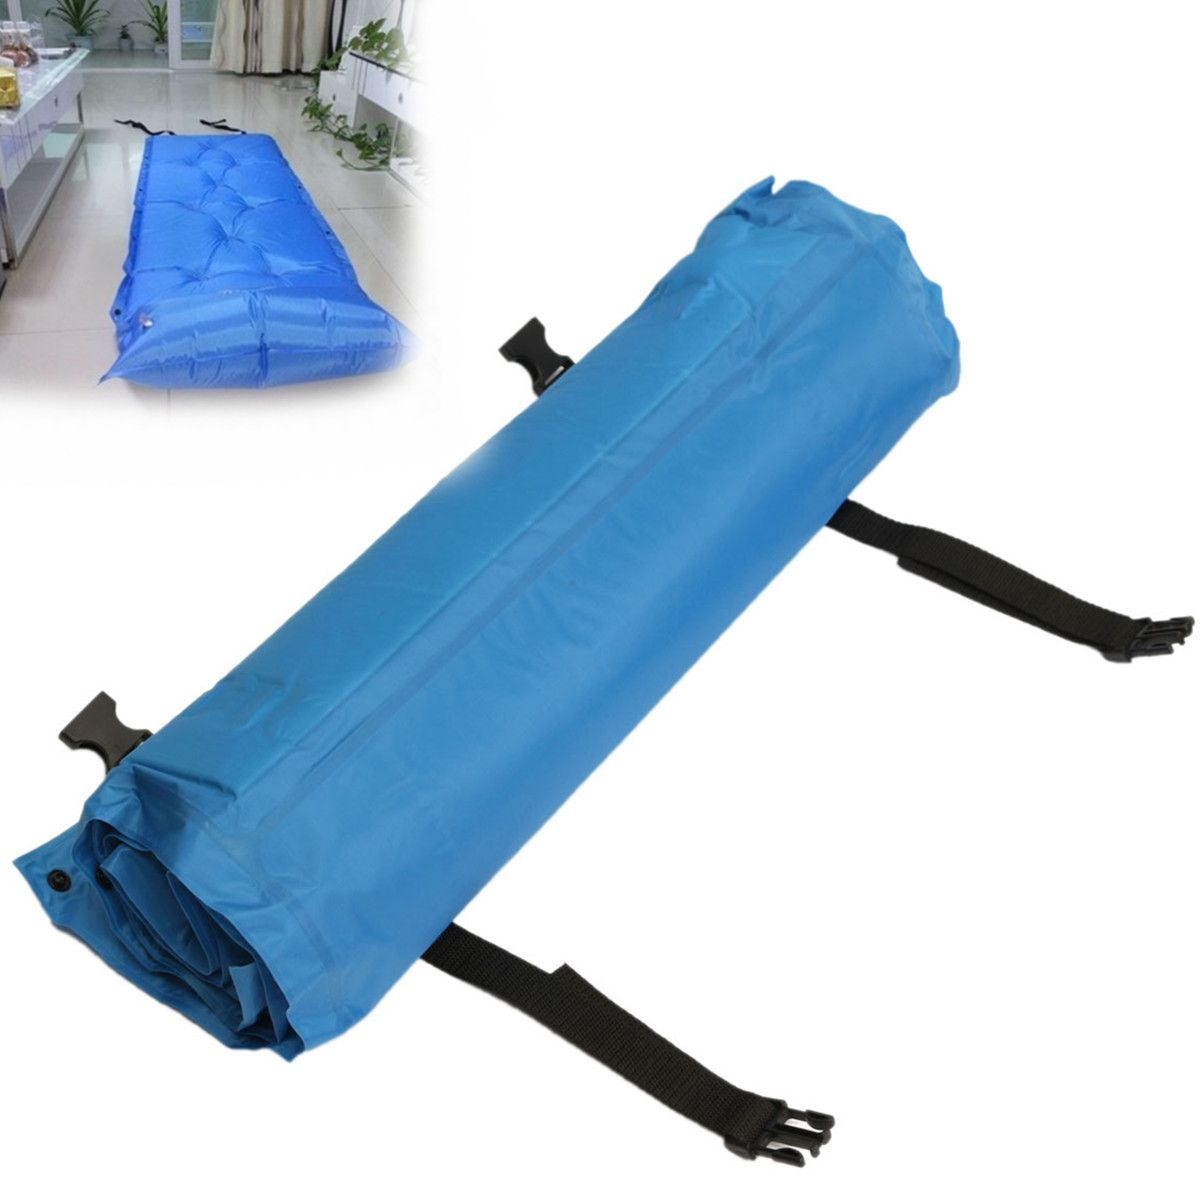 Outdoor Polyester Camping Self Inflating Air Mat Mattress Pad Pillow Waterproof Hiking Sleeping Bed 4 Colors Walmart Com Inflatable Bed Hiking Sleeping Bags Sleeping Pads